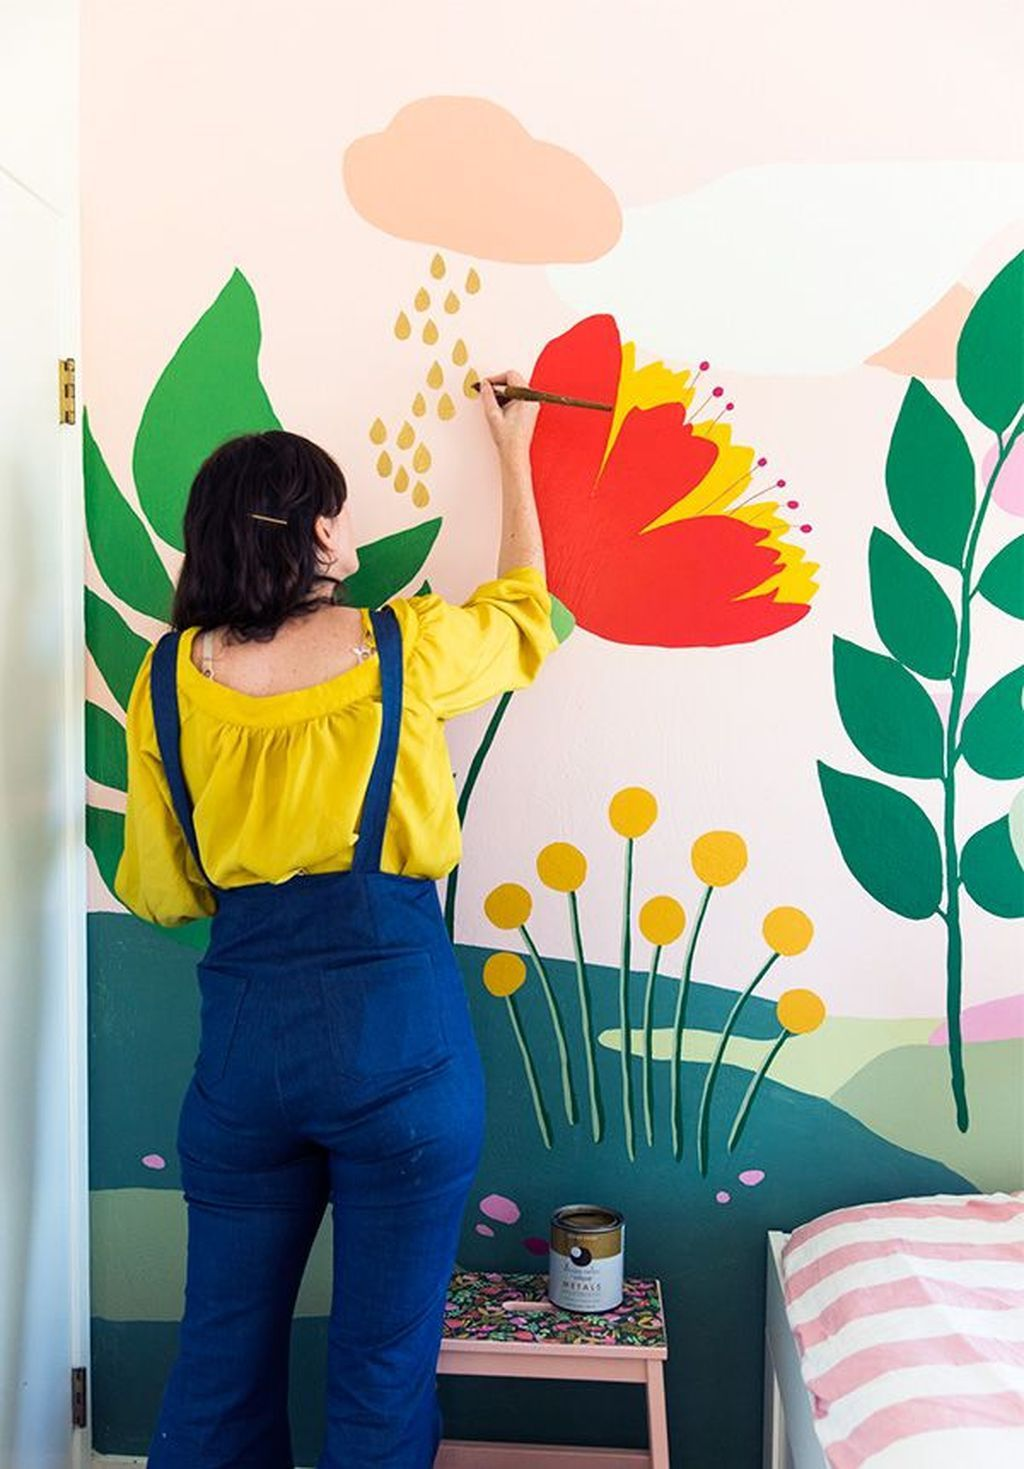 20 Easy Playroom Mural Design Ideas For Kids Kids Wall Murals